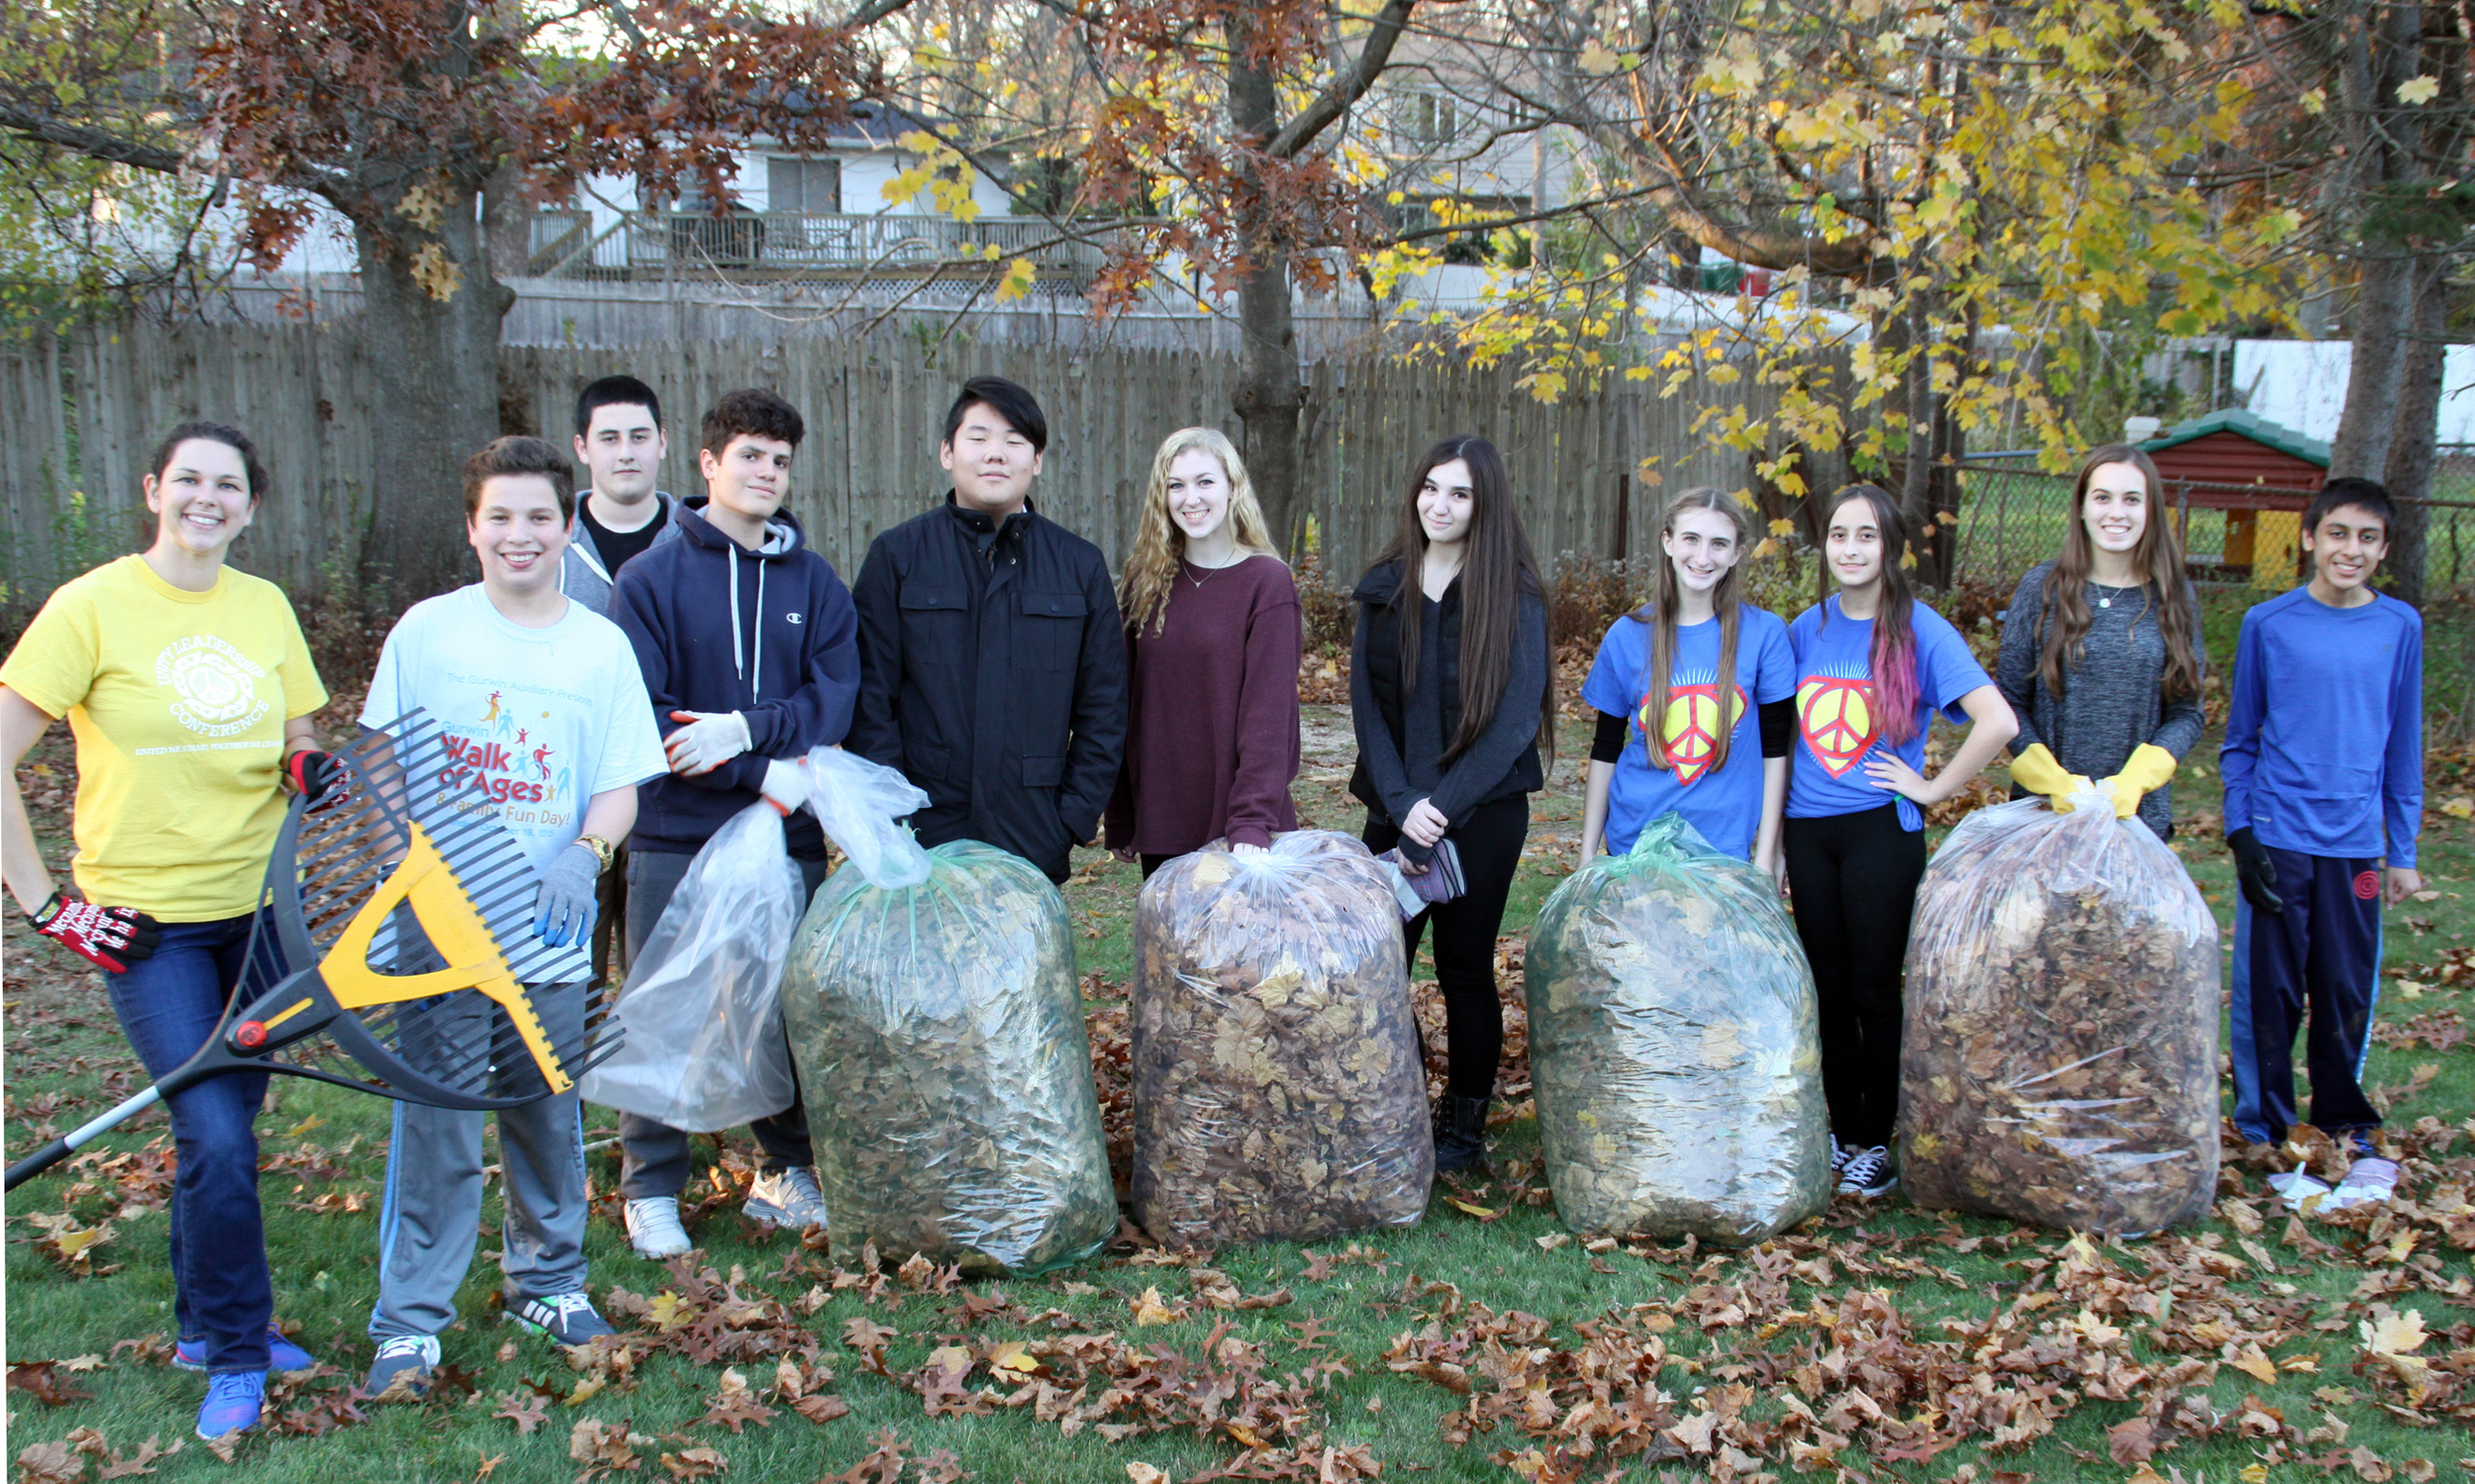 """Commack High School's Pay it Forward club """"raked-it-forward"""" last week as part of the club's annual effort to rake and collect leaves for seniors in the community."""